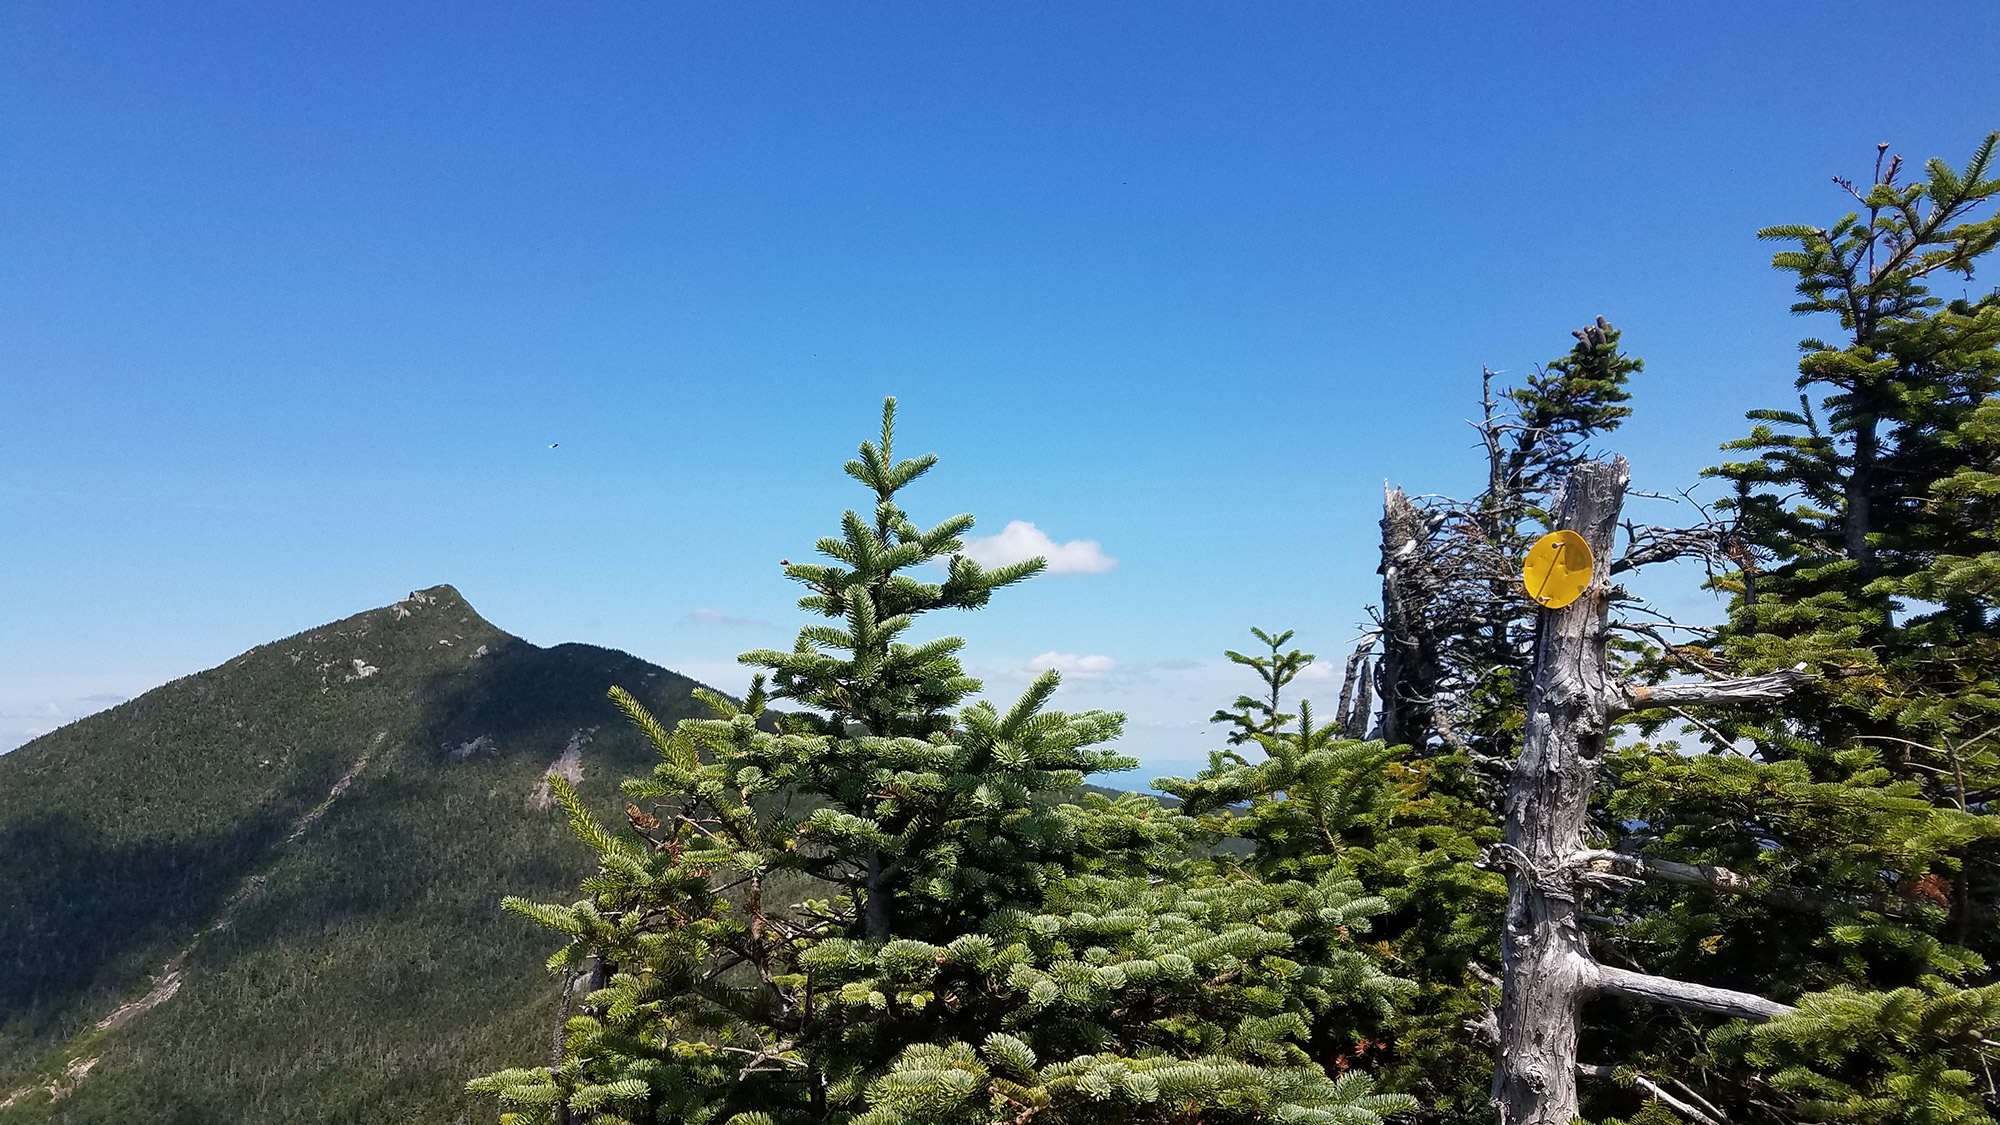 On top of Hough Peak. | Credit: Sarah Quandt